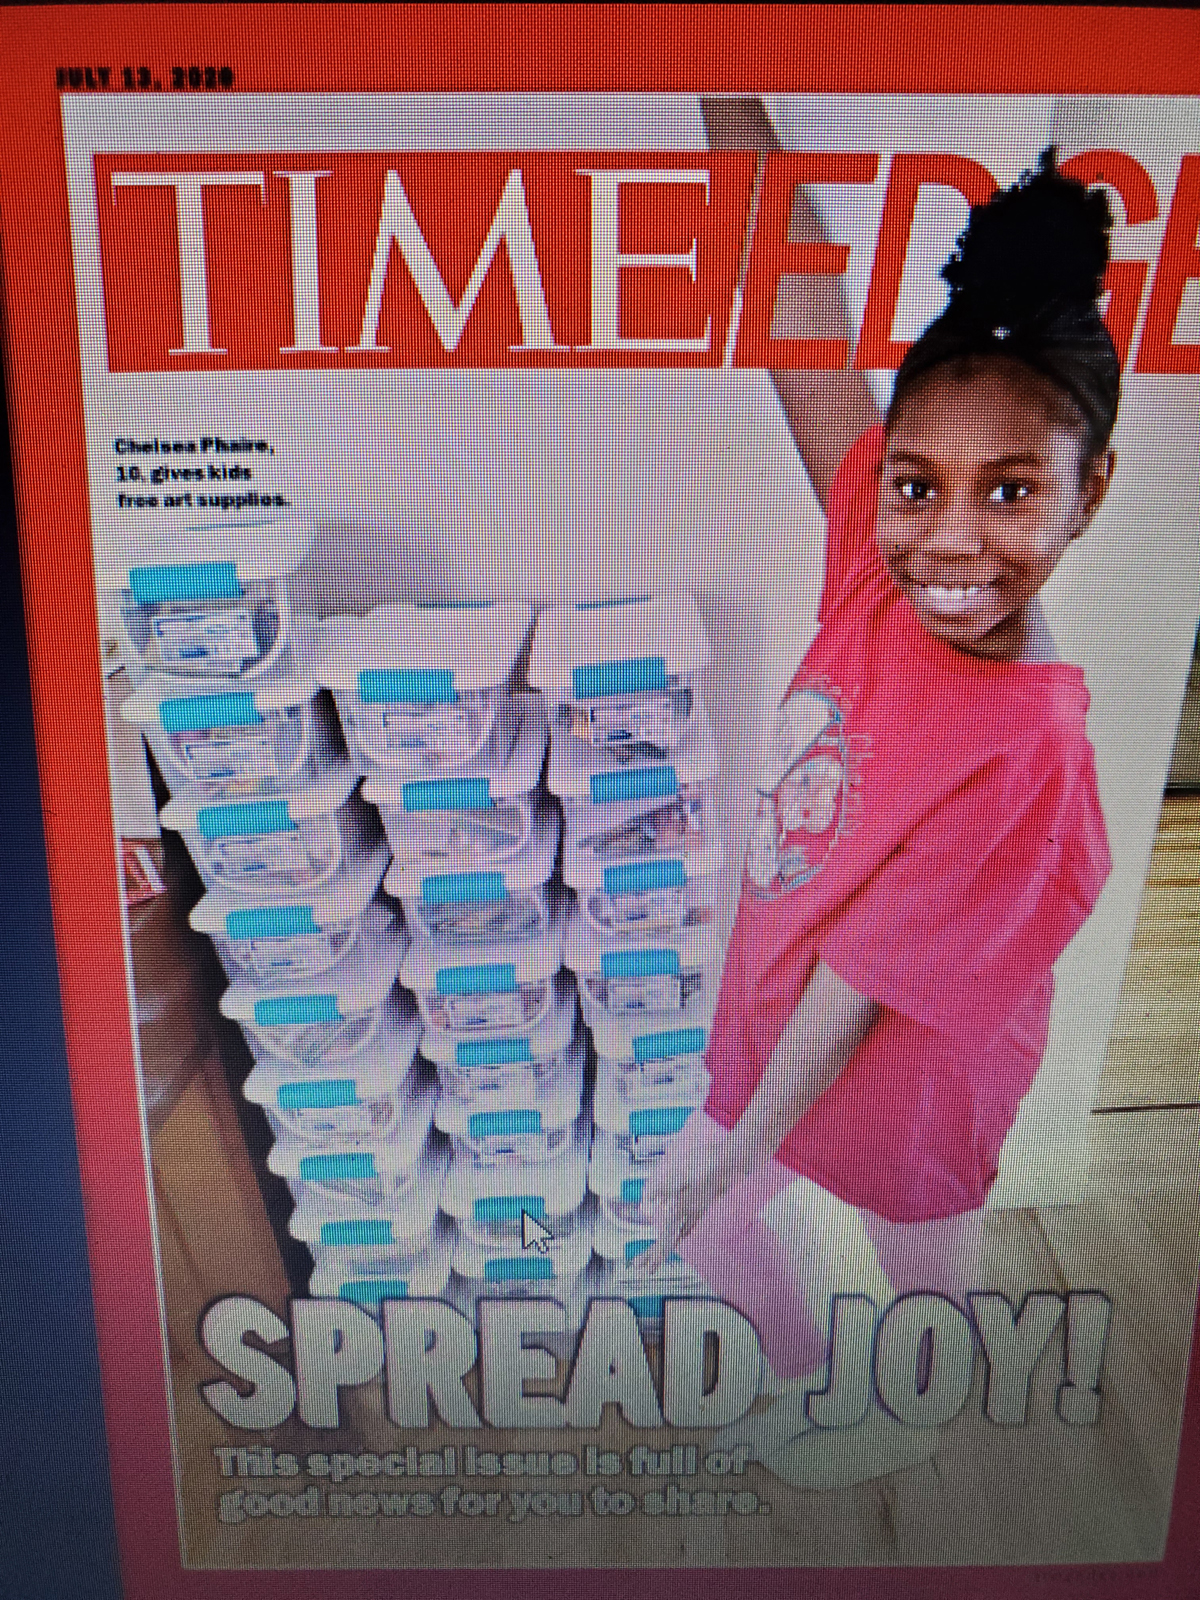 Screenshot of Times Kids cover with Chelsea Phaire